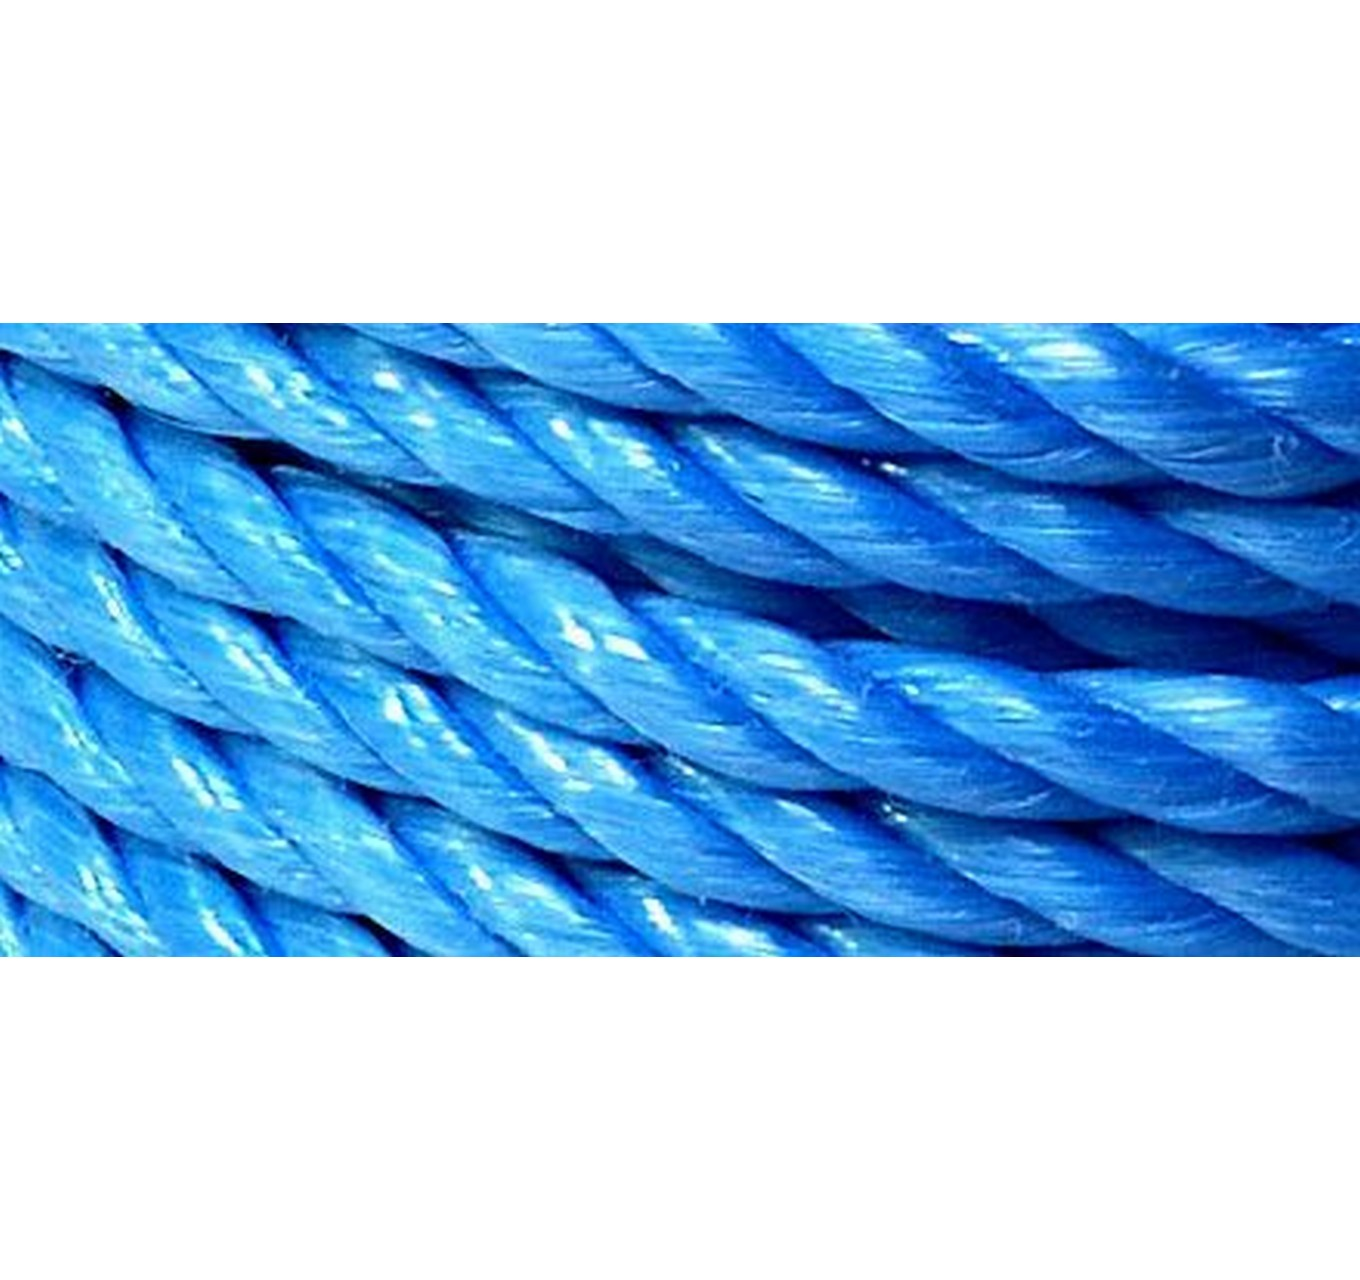 Blue Poly Rope 10mm x 27m